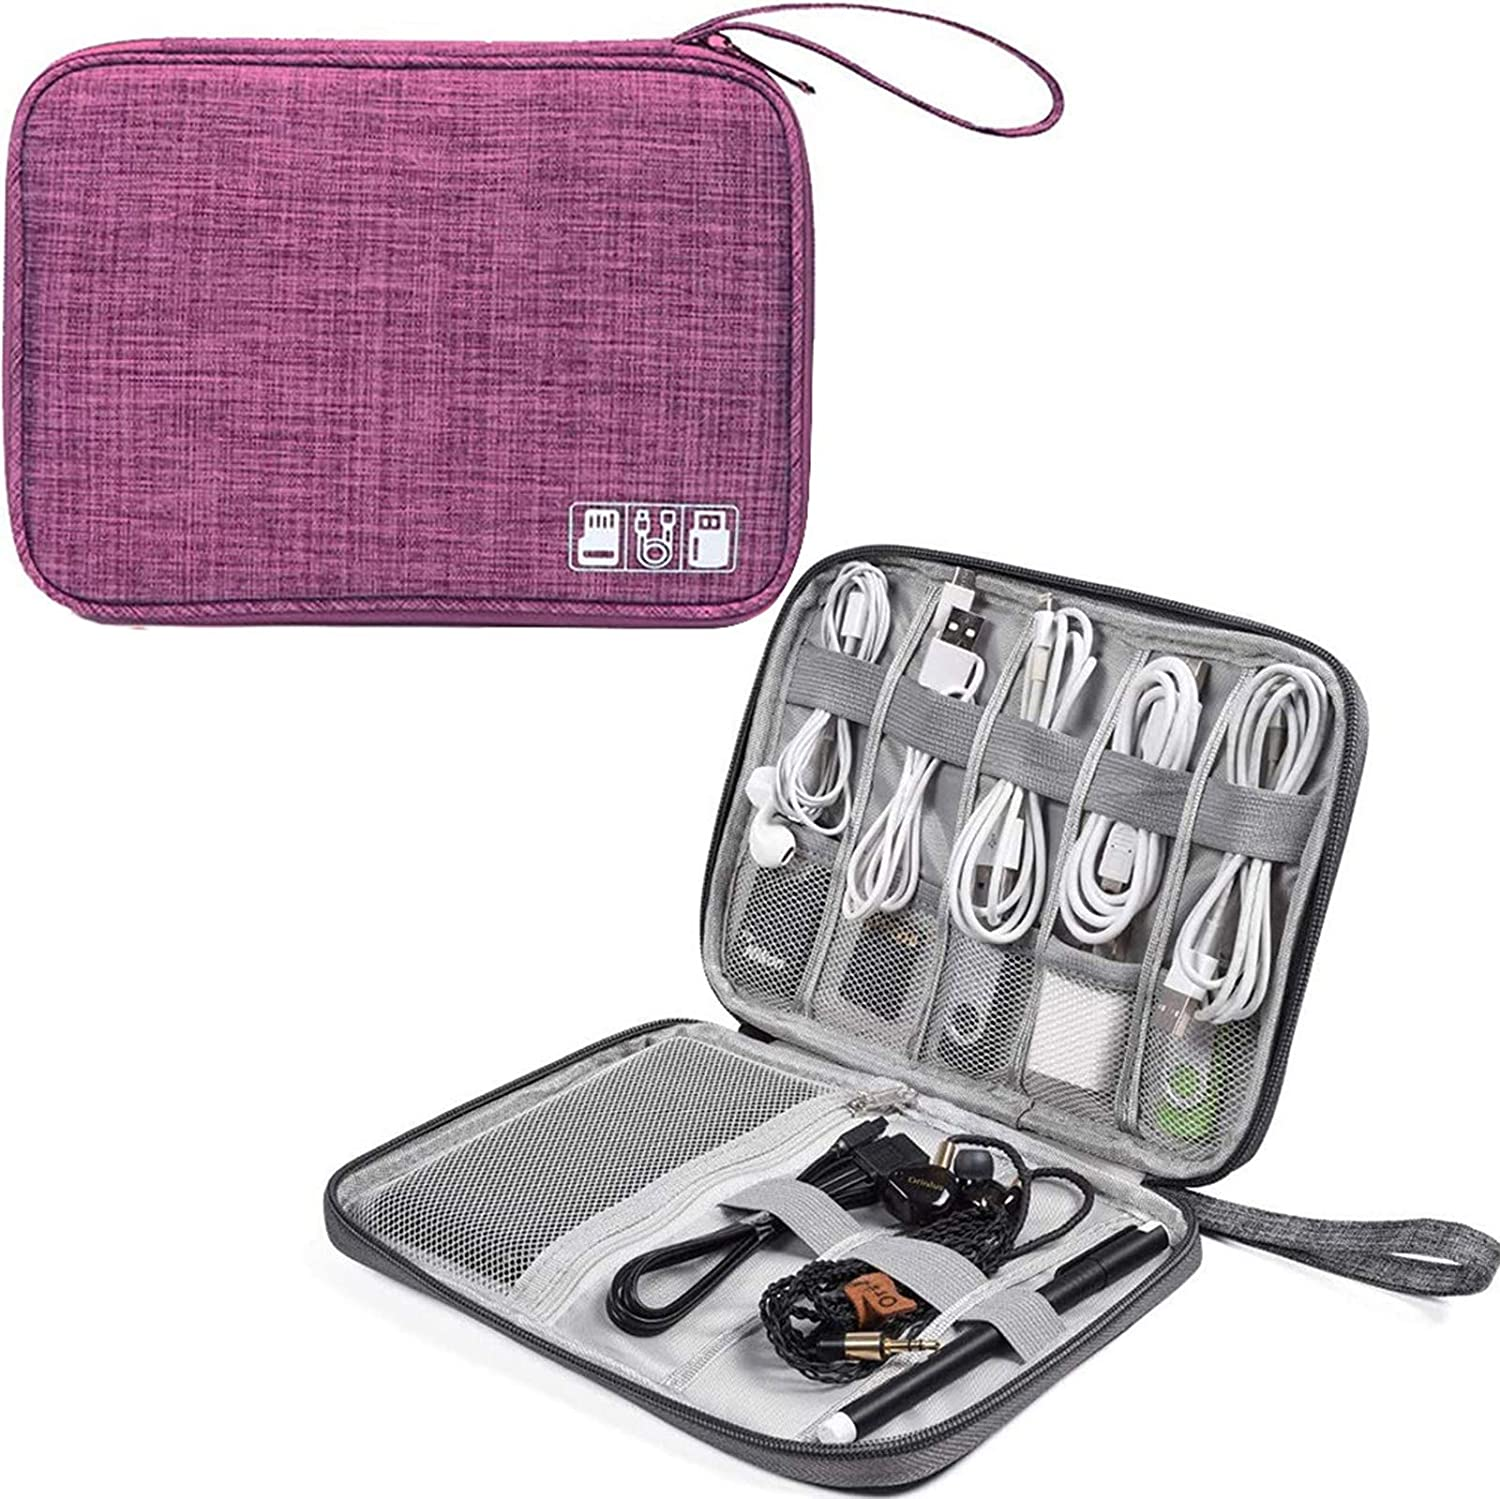 Electronics Accessories Bag, Digital Gadget Organizer Case, Waterproof Travel Gear Storage Carrying Sleeve Pouch for Cable, USB, Earphones, Portable Hard Drives, Power Banks,Purple